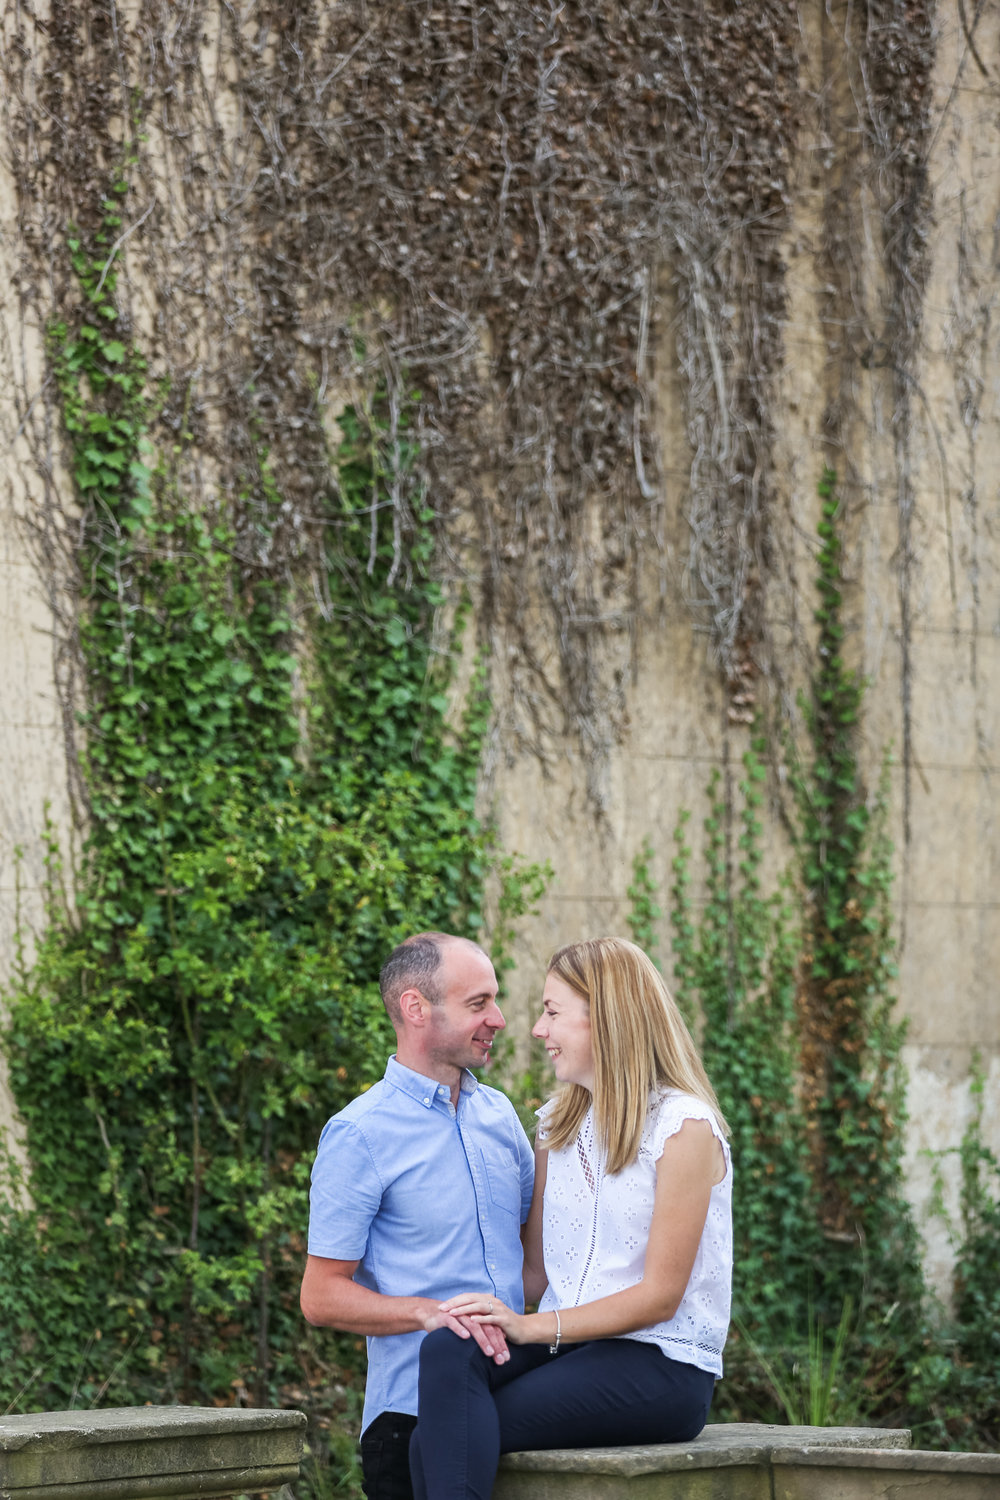 0096-Claire & Tony - engagement-Heaton Moor Park-Manchester-photo.jpg